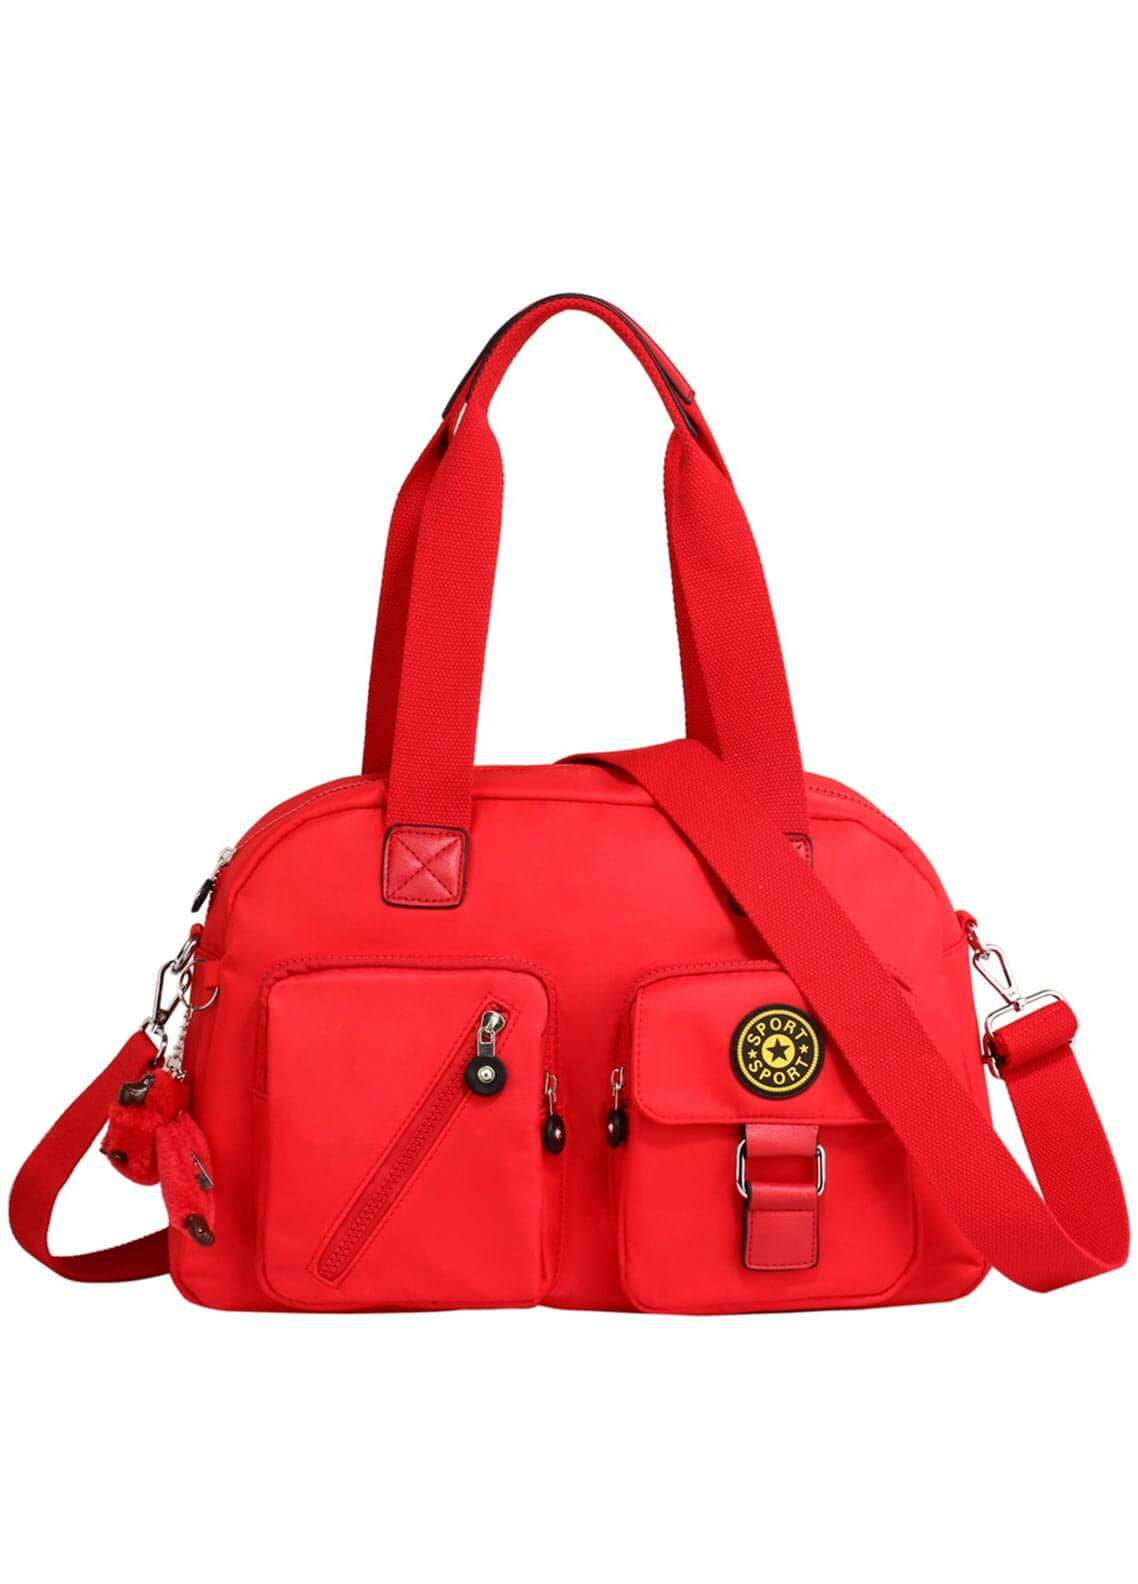 Anna Grace London Faux Leather Shoulder Bags for Woman - Red